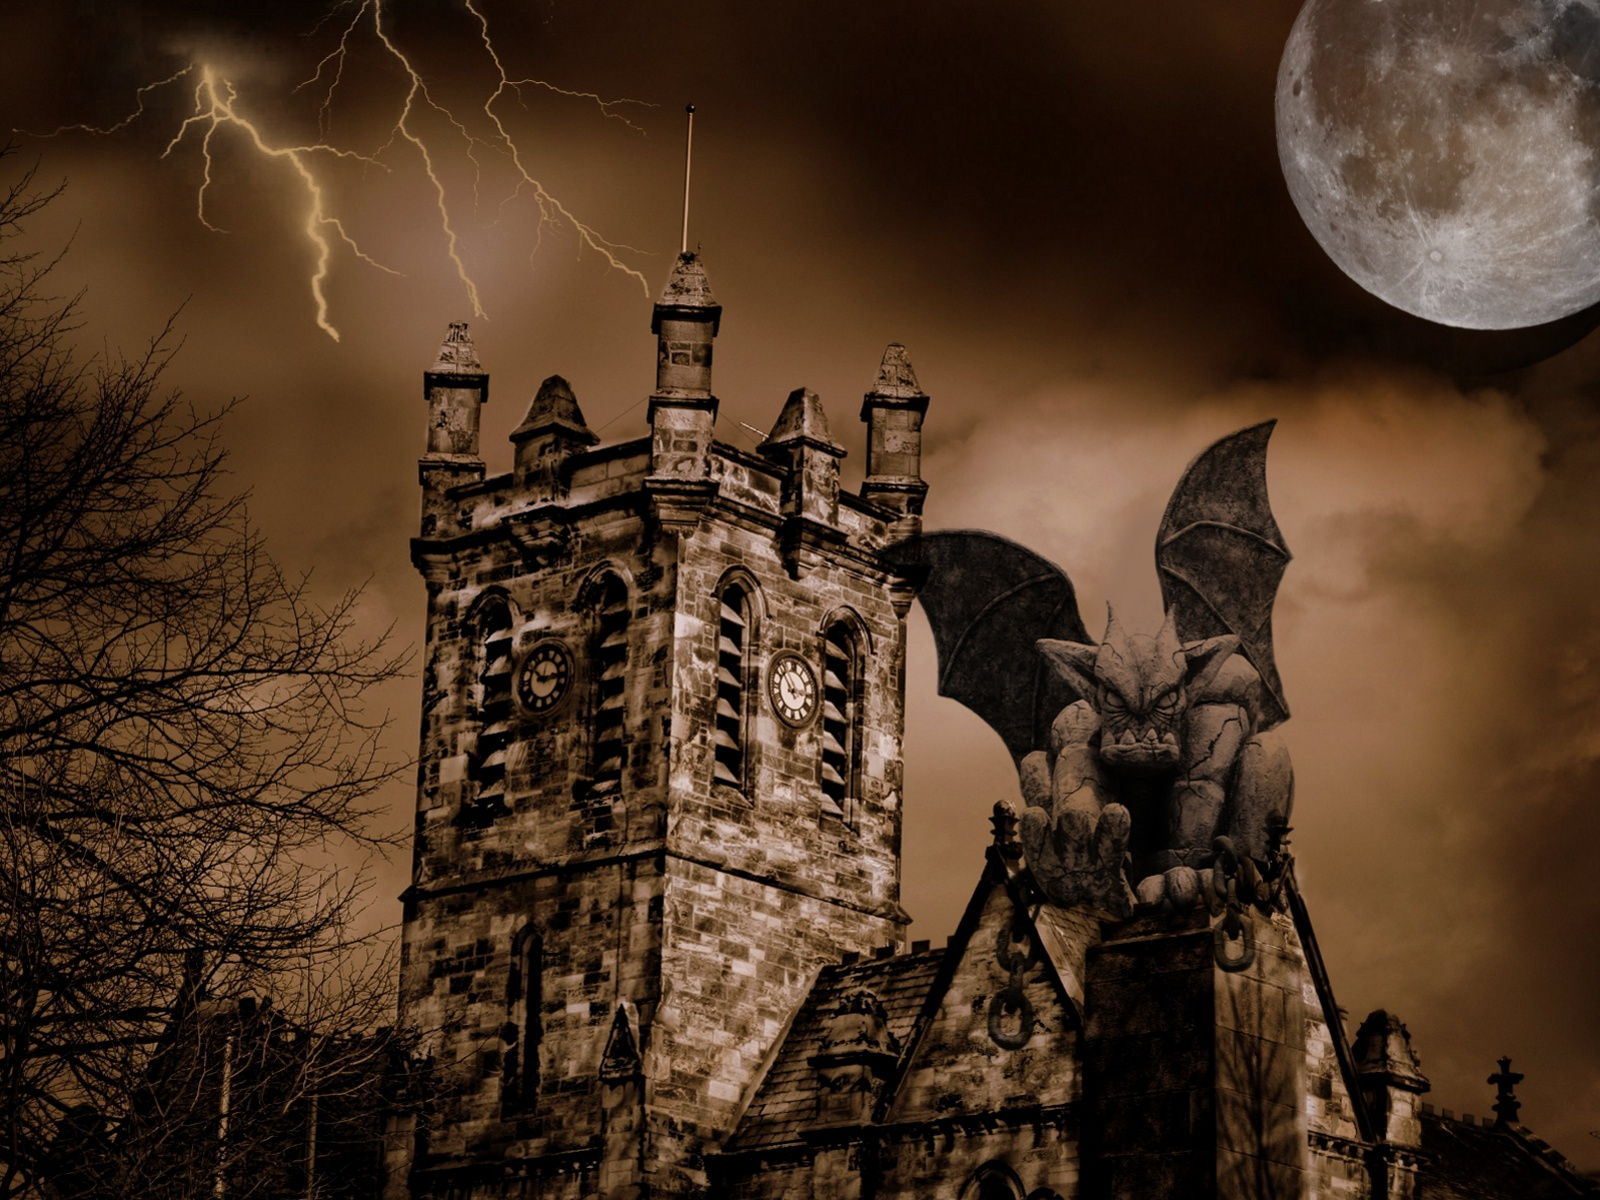 Gargoyle Wallpaper And Background 1600x1200 Id 101666 HD Wallpapers Download Free Images Wallpaper [1000image.com]